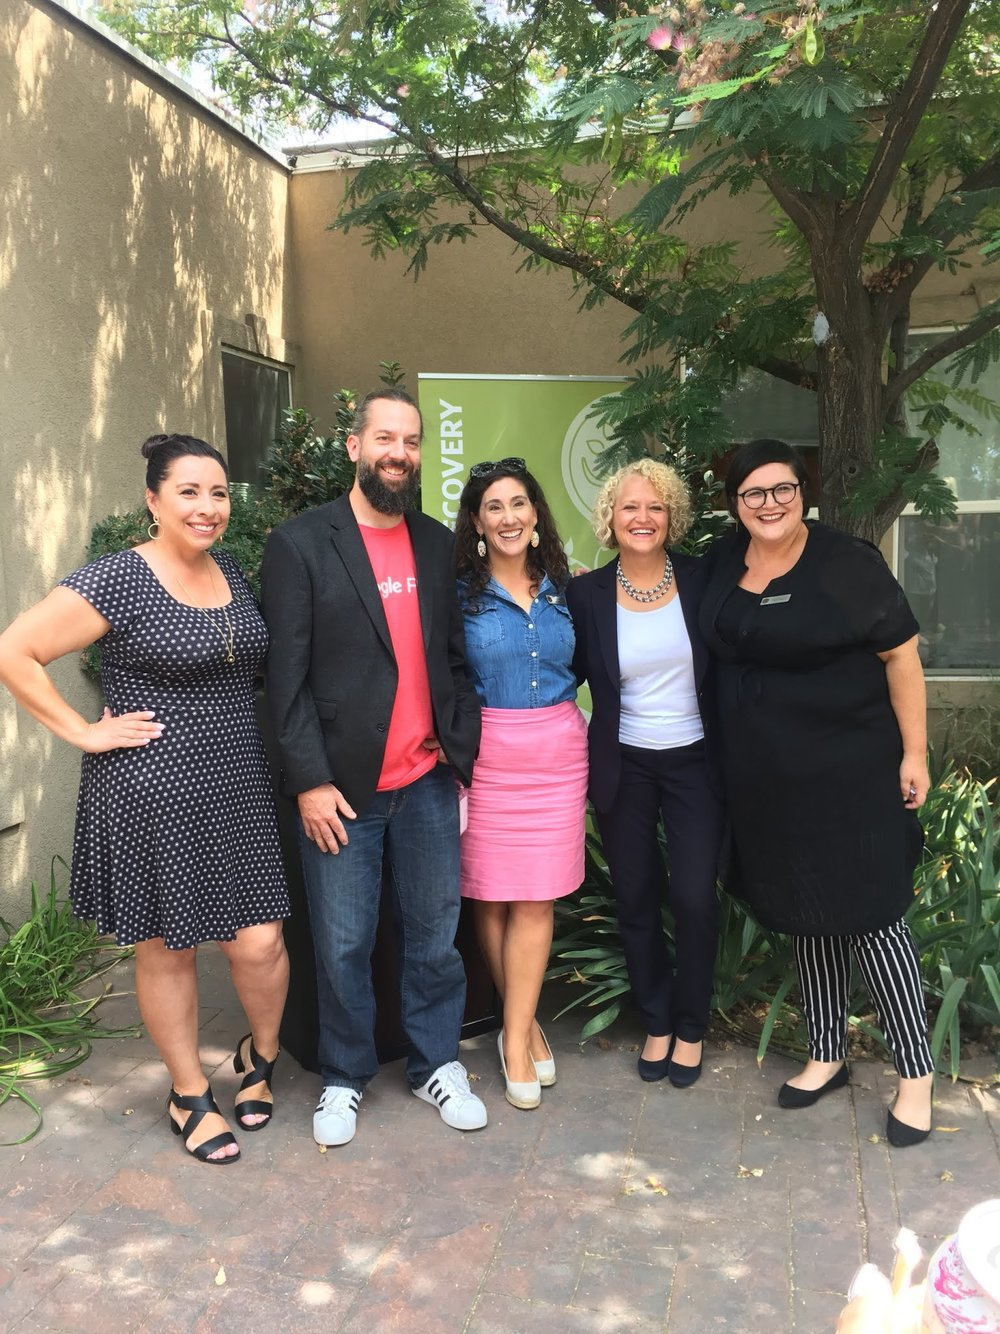 Left to Right: State Representative Angela Romero, Jacob Brace (Community Impact Manager, Google Fiber), Shireen Ghorbani (Board Chair, Rape Recovery Center), Salt Lake City Mayor Jackie Biskupski, and Mara Haight (Executive Director, Rape Recovery Center).